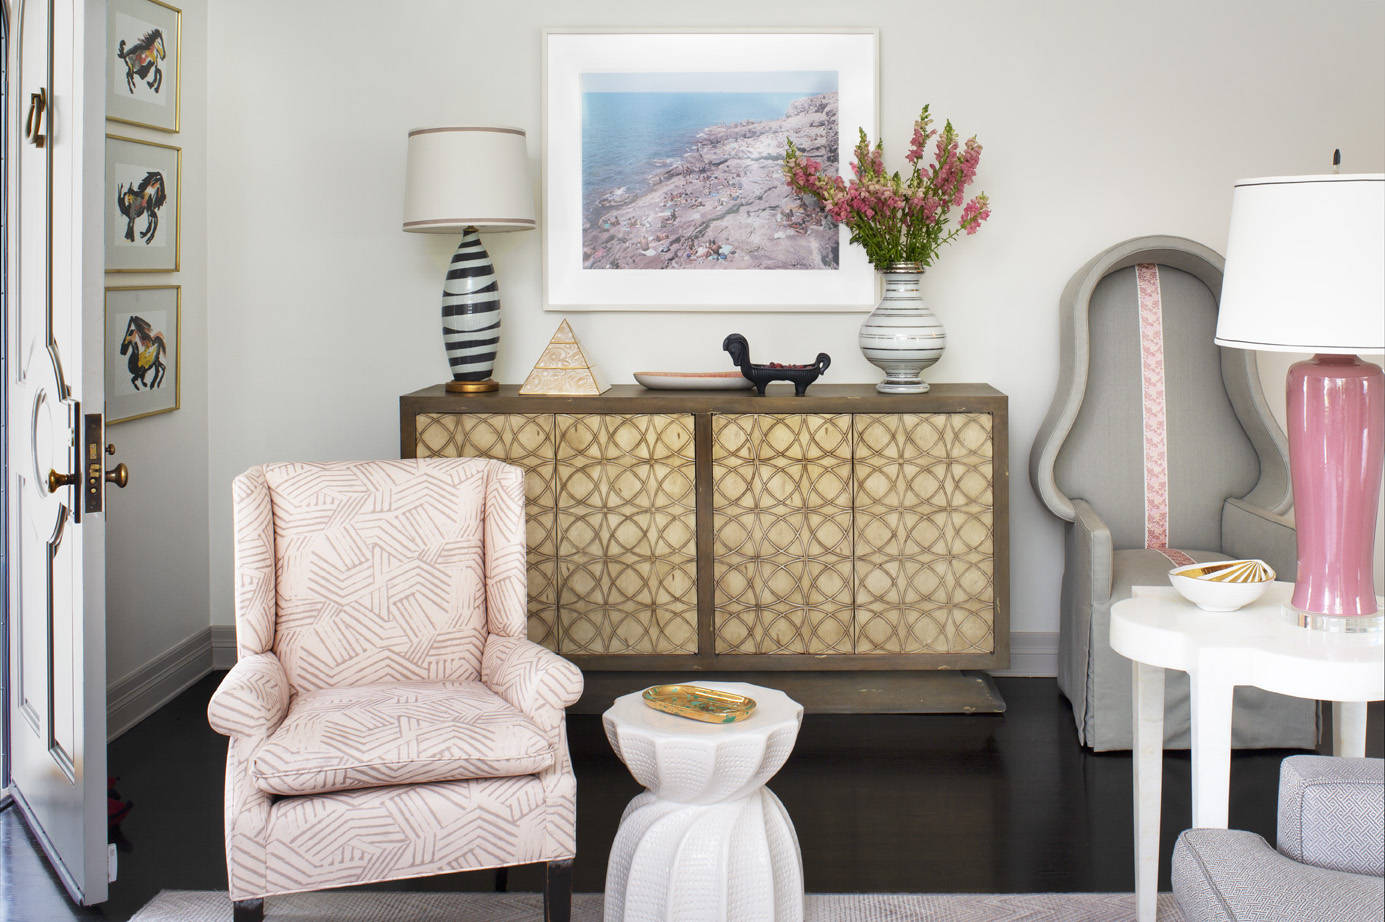 The ultimate compliment: Designer Melissa Warner Rothblum incorporates Miramar fabric in her own home. Photo credit: Grey Crawford